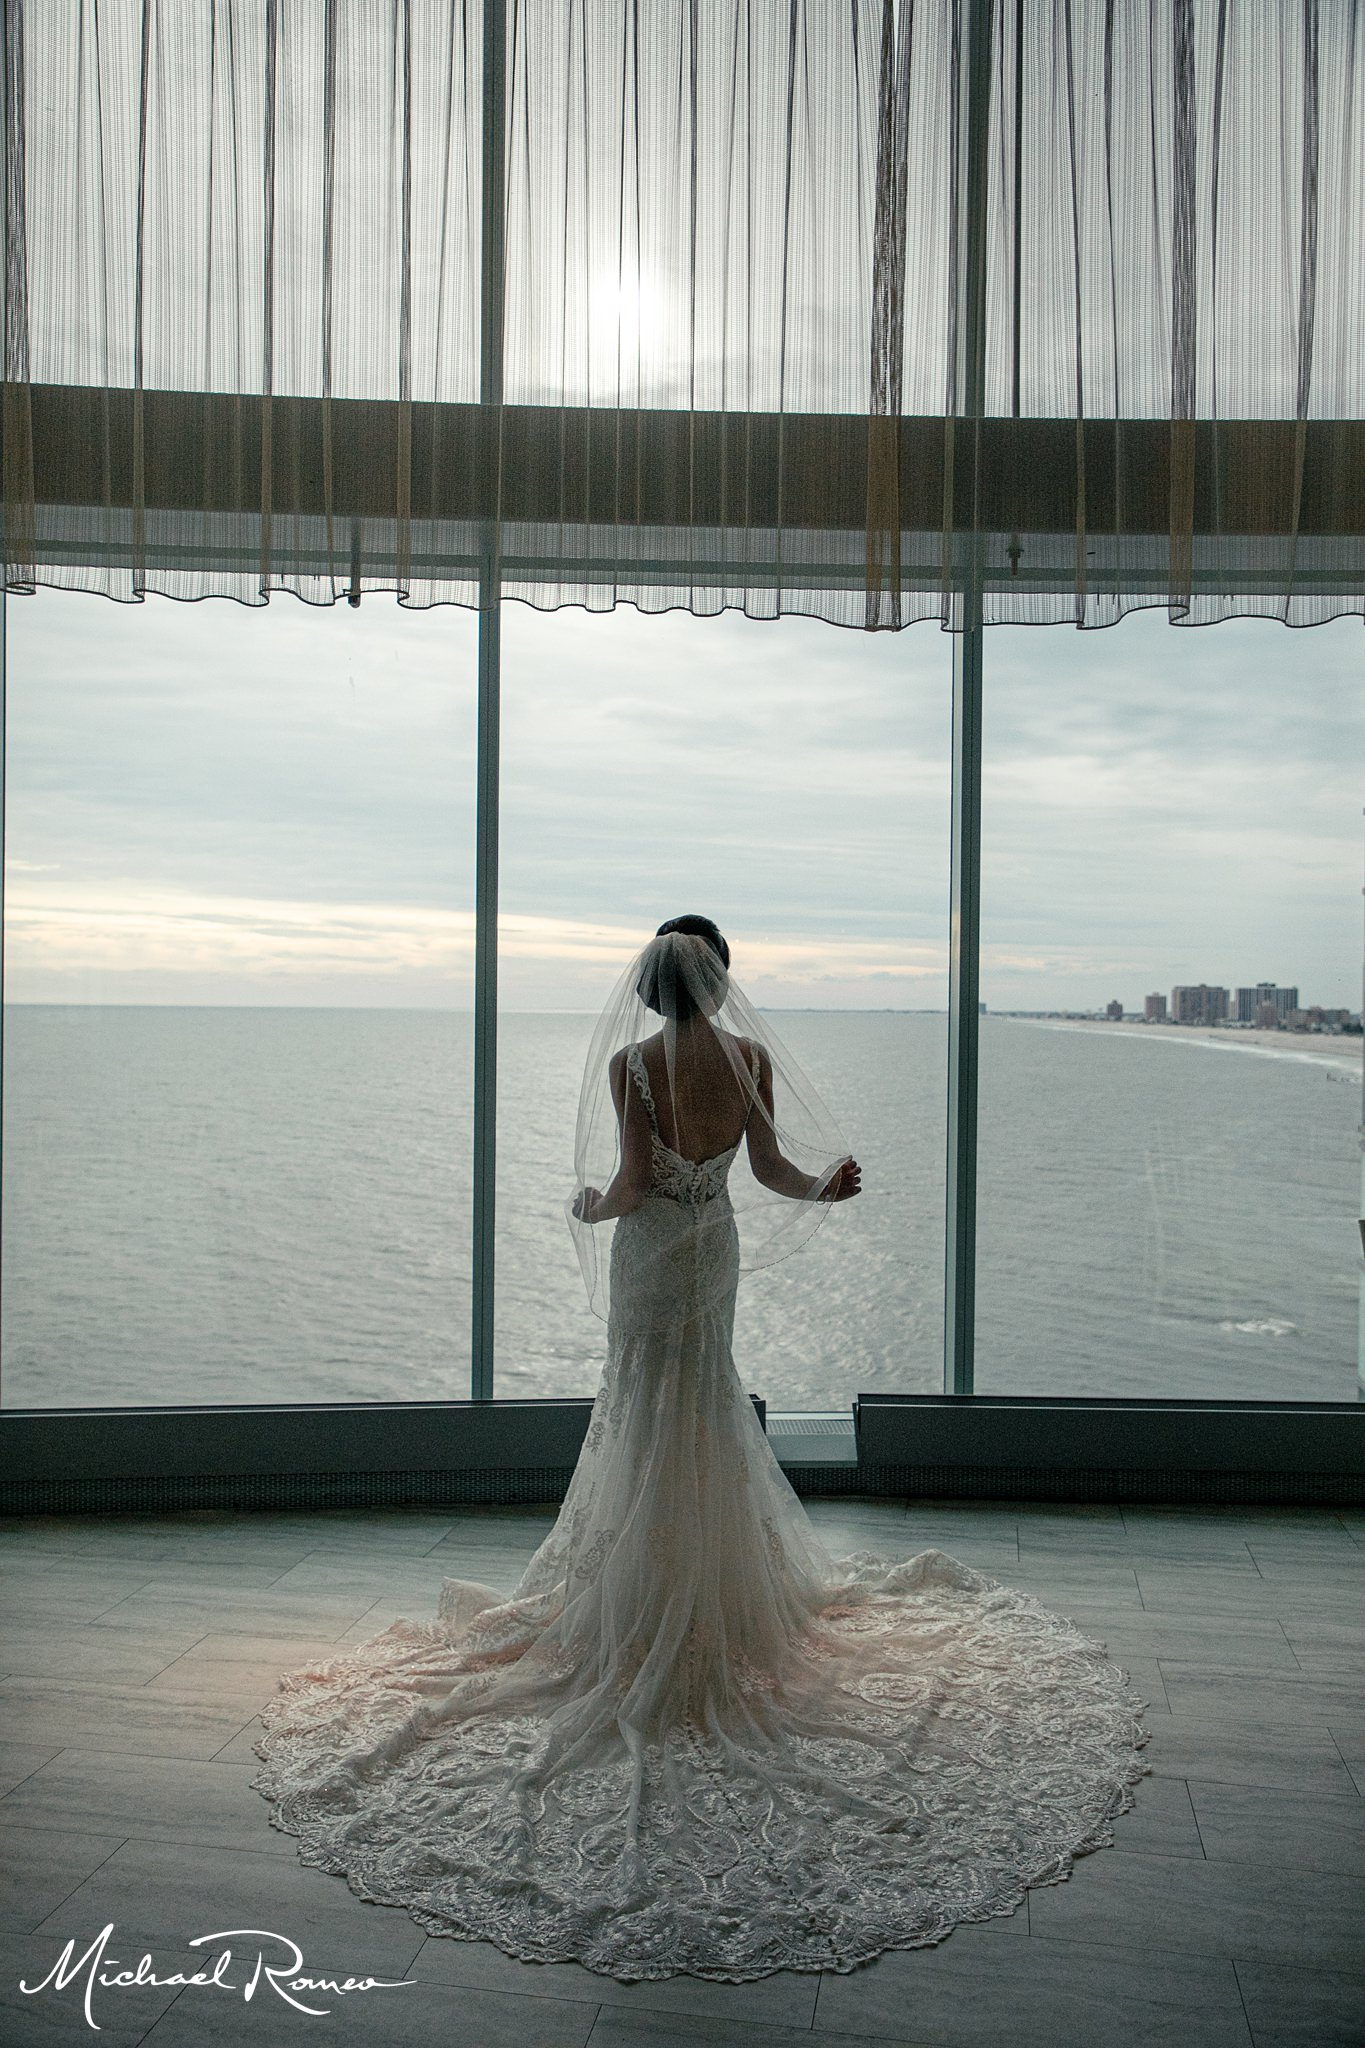 New Jersey Wedding photography cinematography Michael Romeo Creations 1456 - Is a Wedding Website Really Necessary?